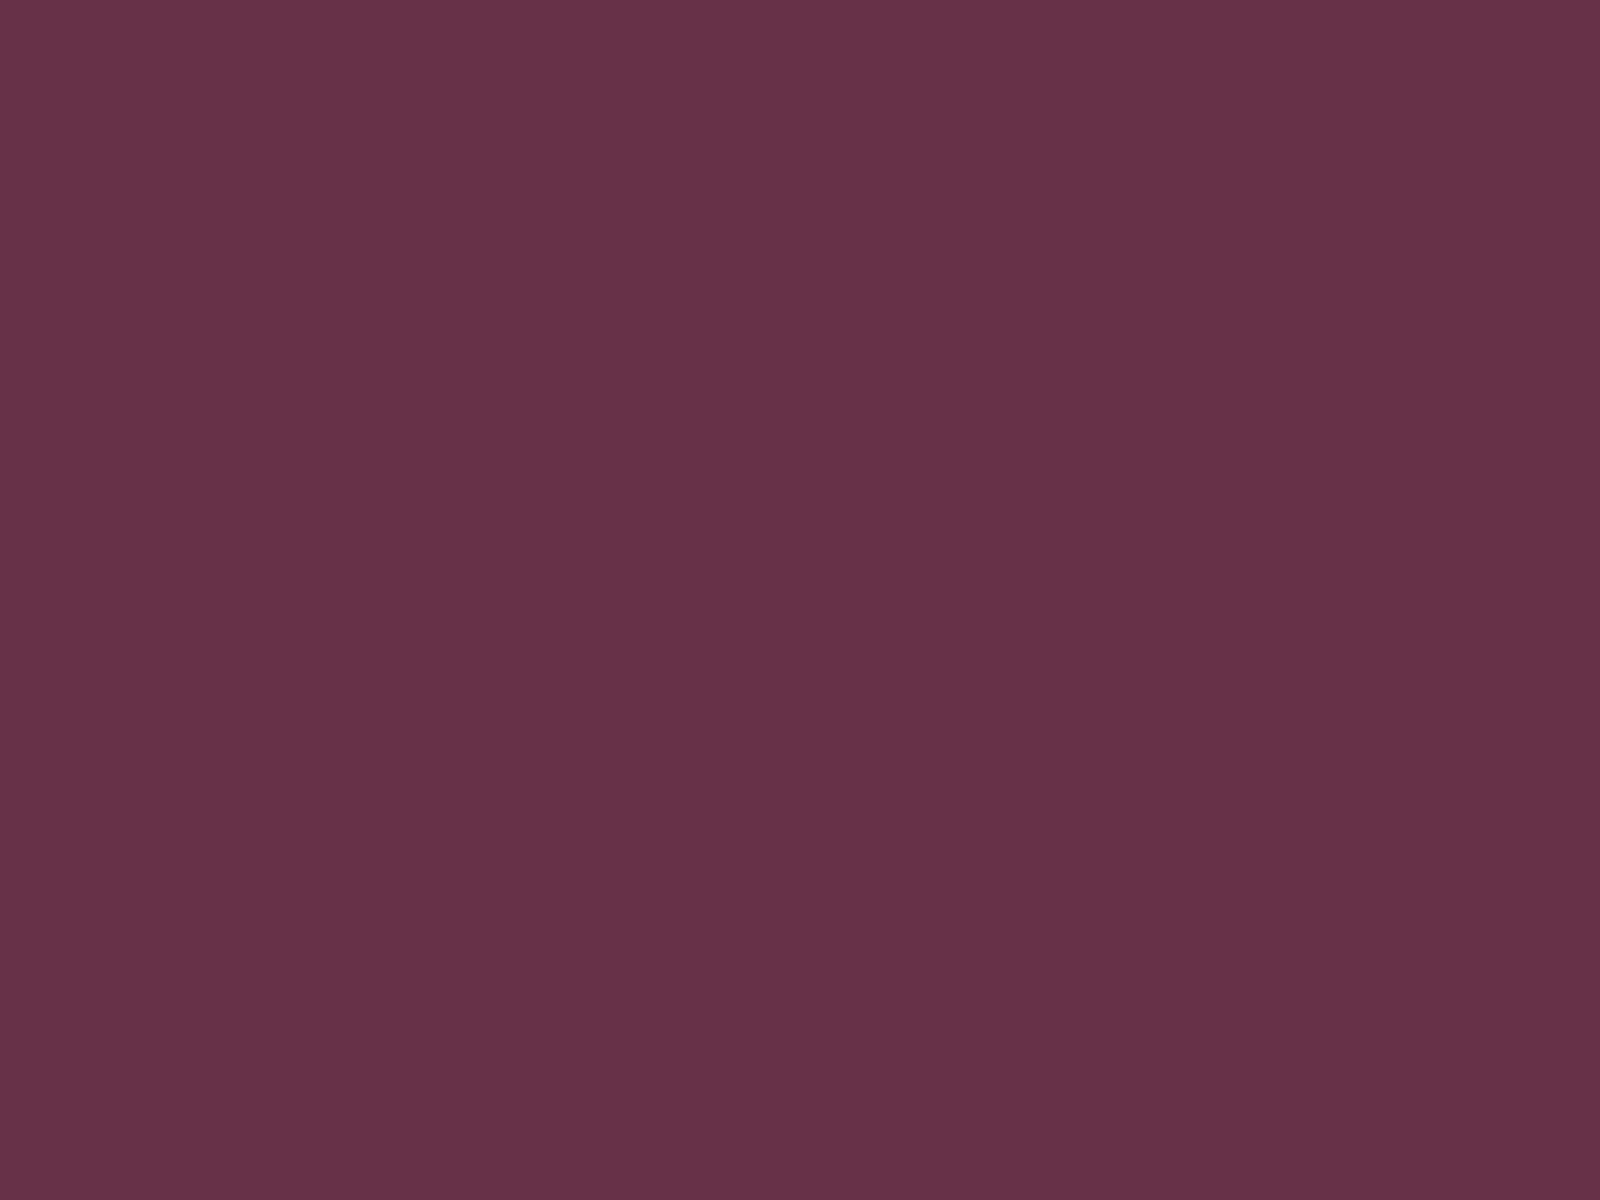 1600x1200 Old Mauve Solid Color Background